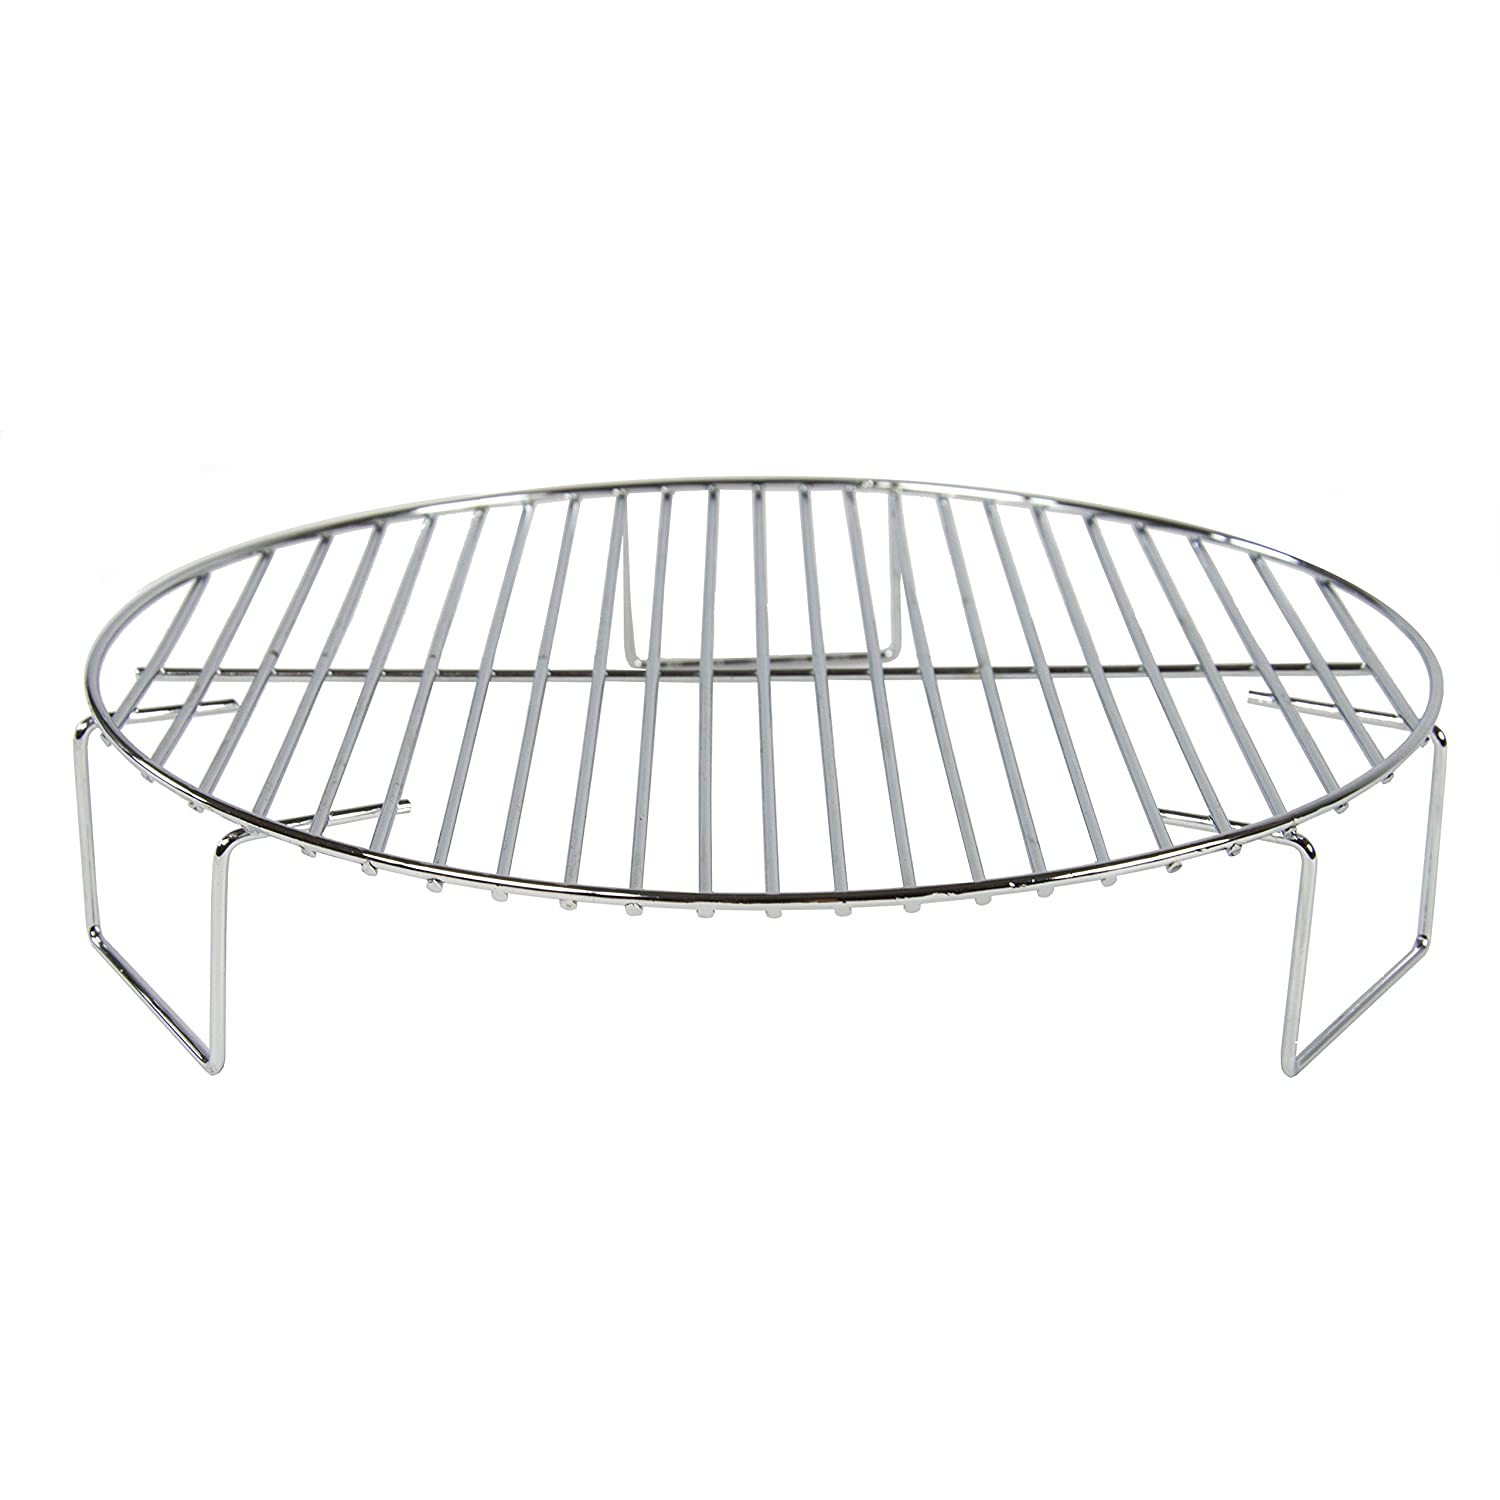 Amazon.com: Oven Rack Grill Accessory for Convection Ovens and More ...